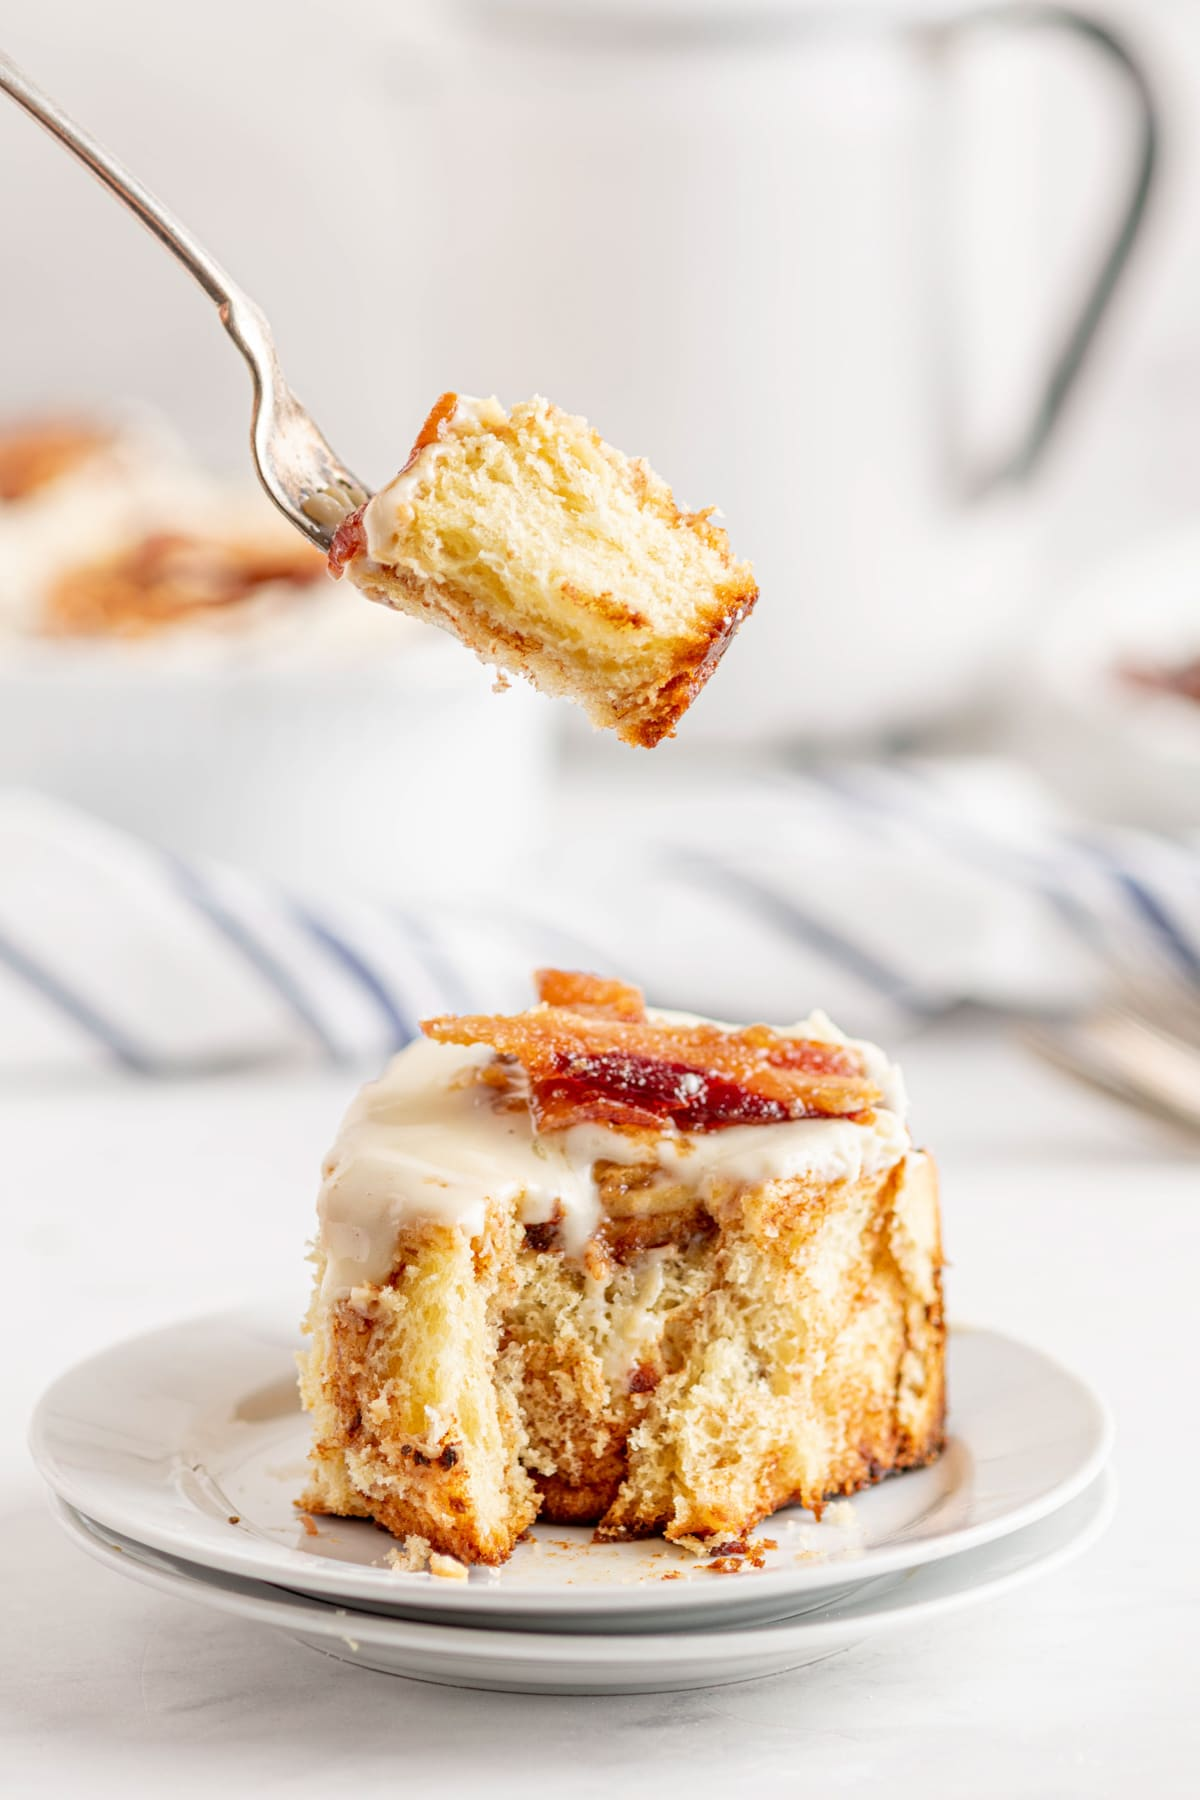 single bacon cinnamon roll with a bite out of it